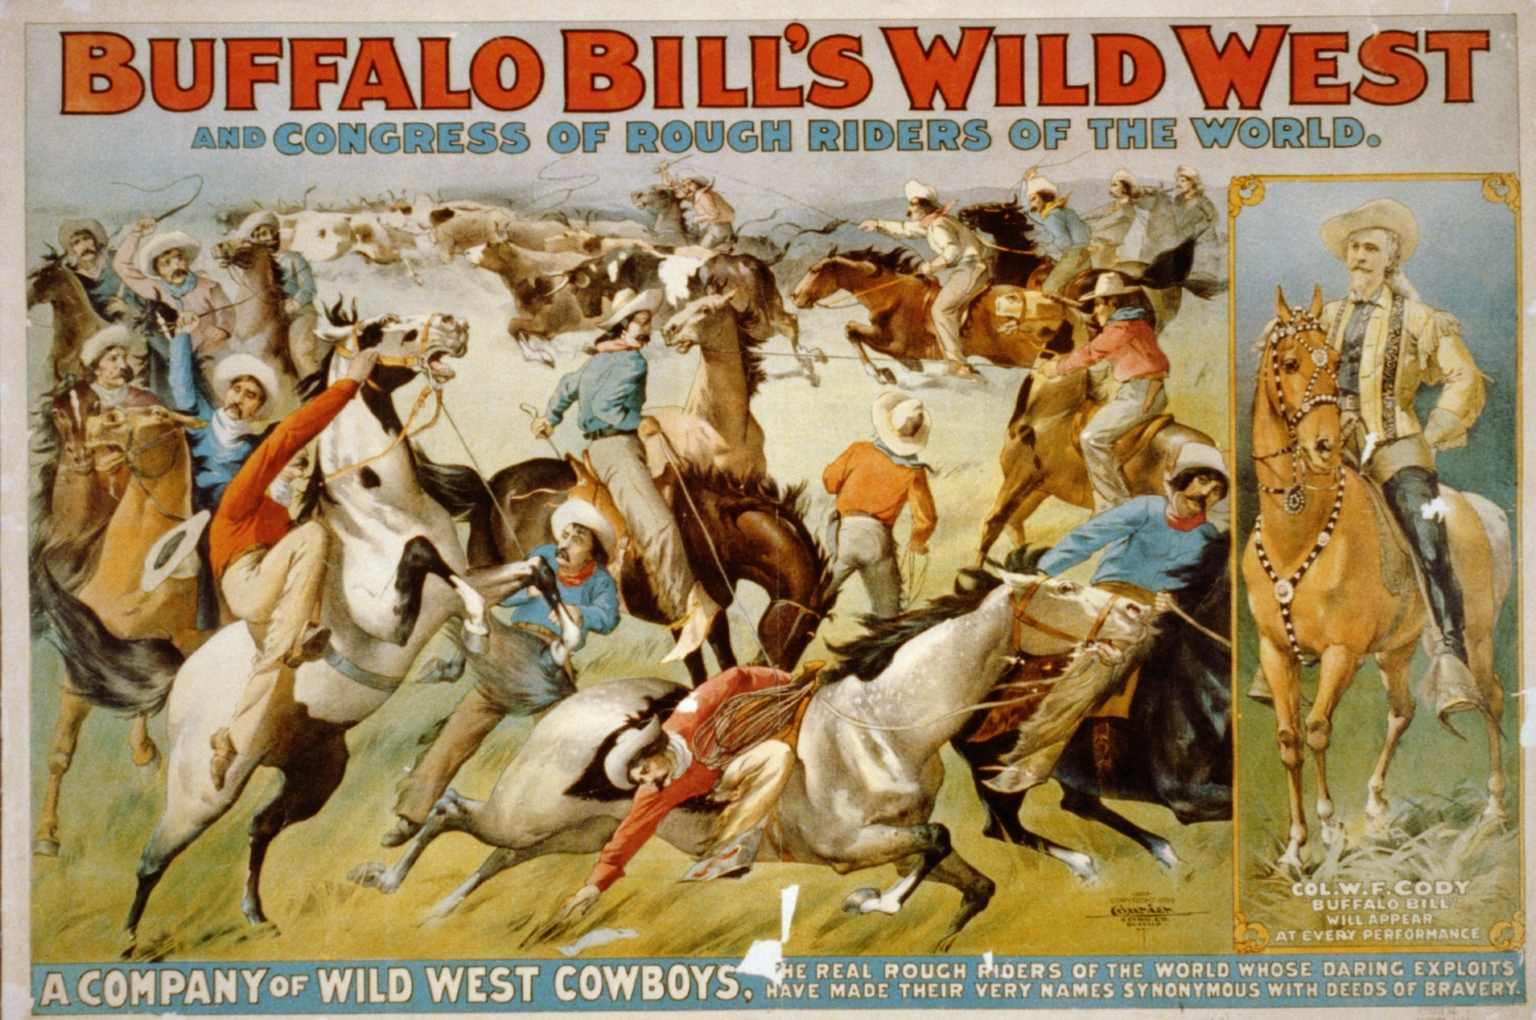 Buffalo Bill's Wild West and Congress of Rough Riders of the World c. 1899 by Courier Litho. Co., Buffalo, N.Y. [Public domain], via Wikimedia Commons